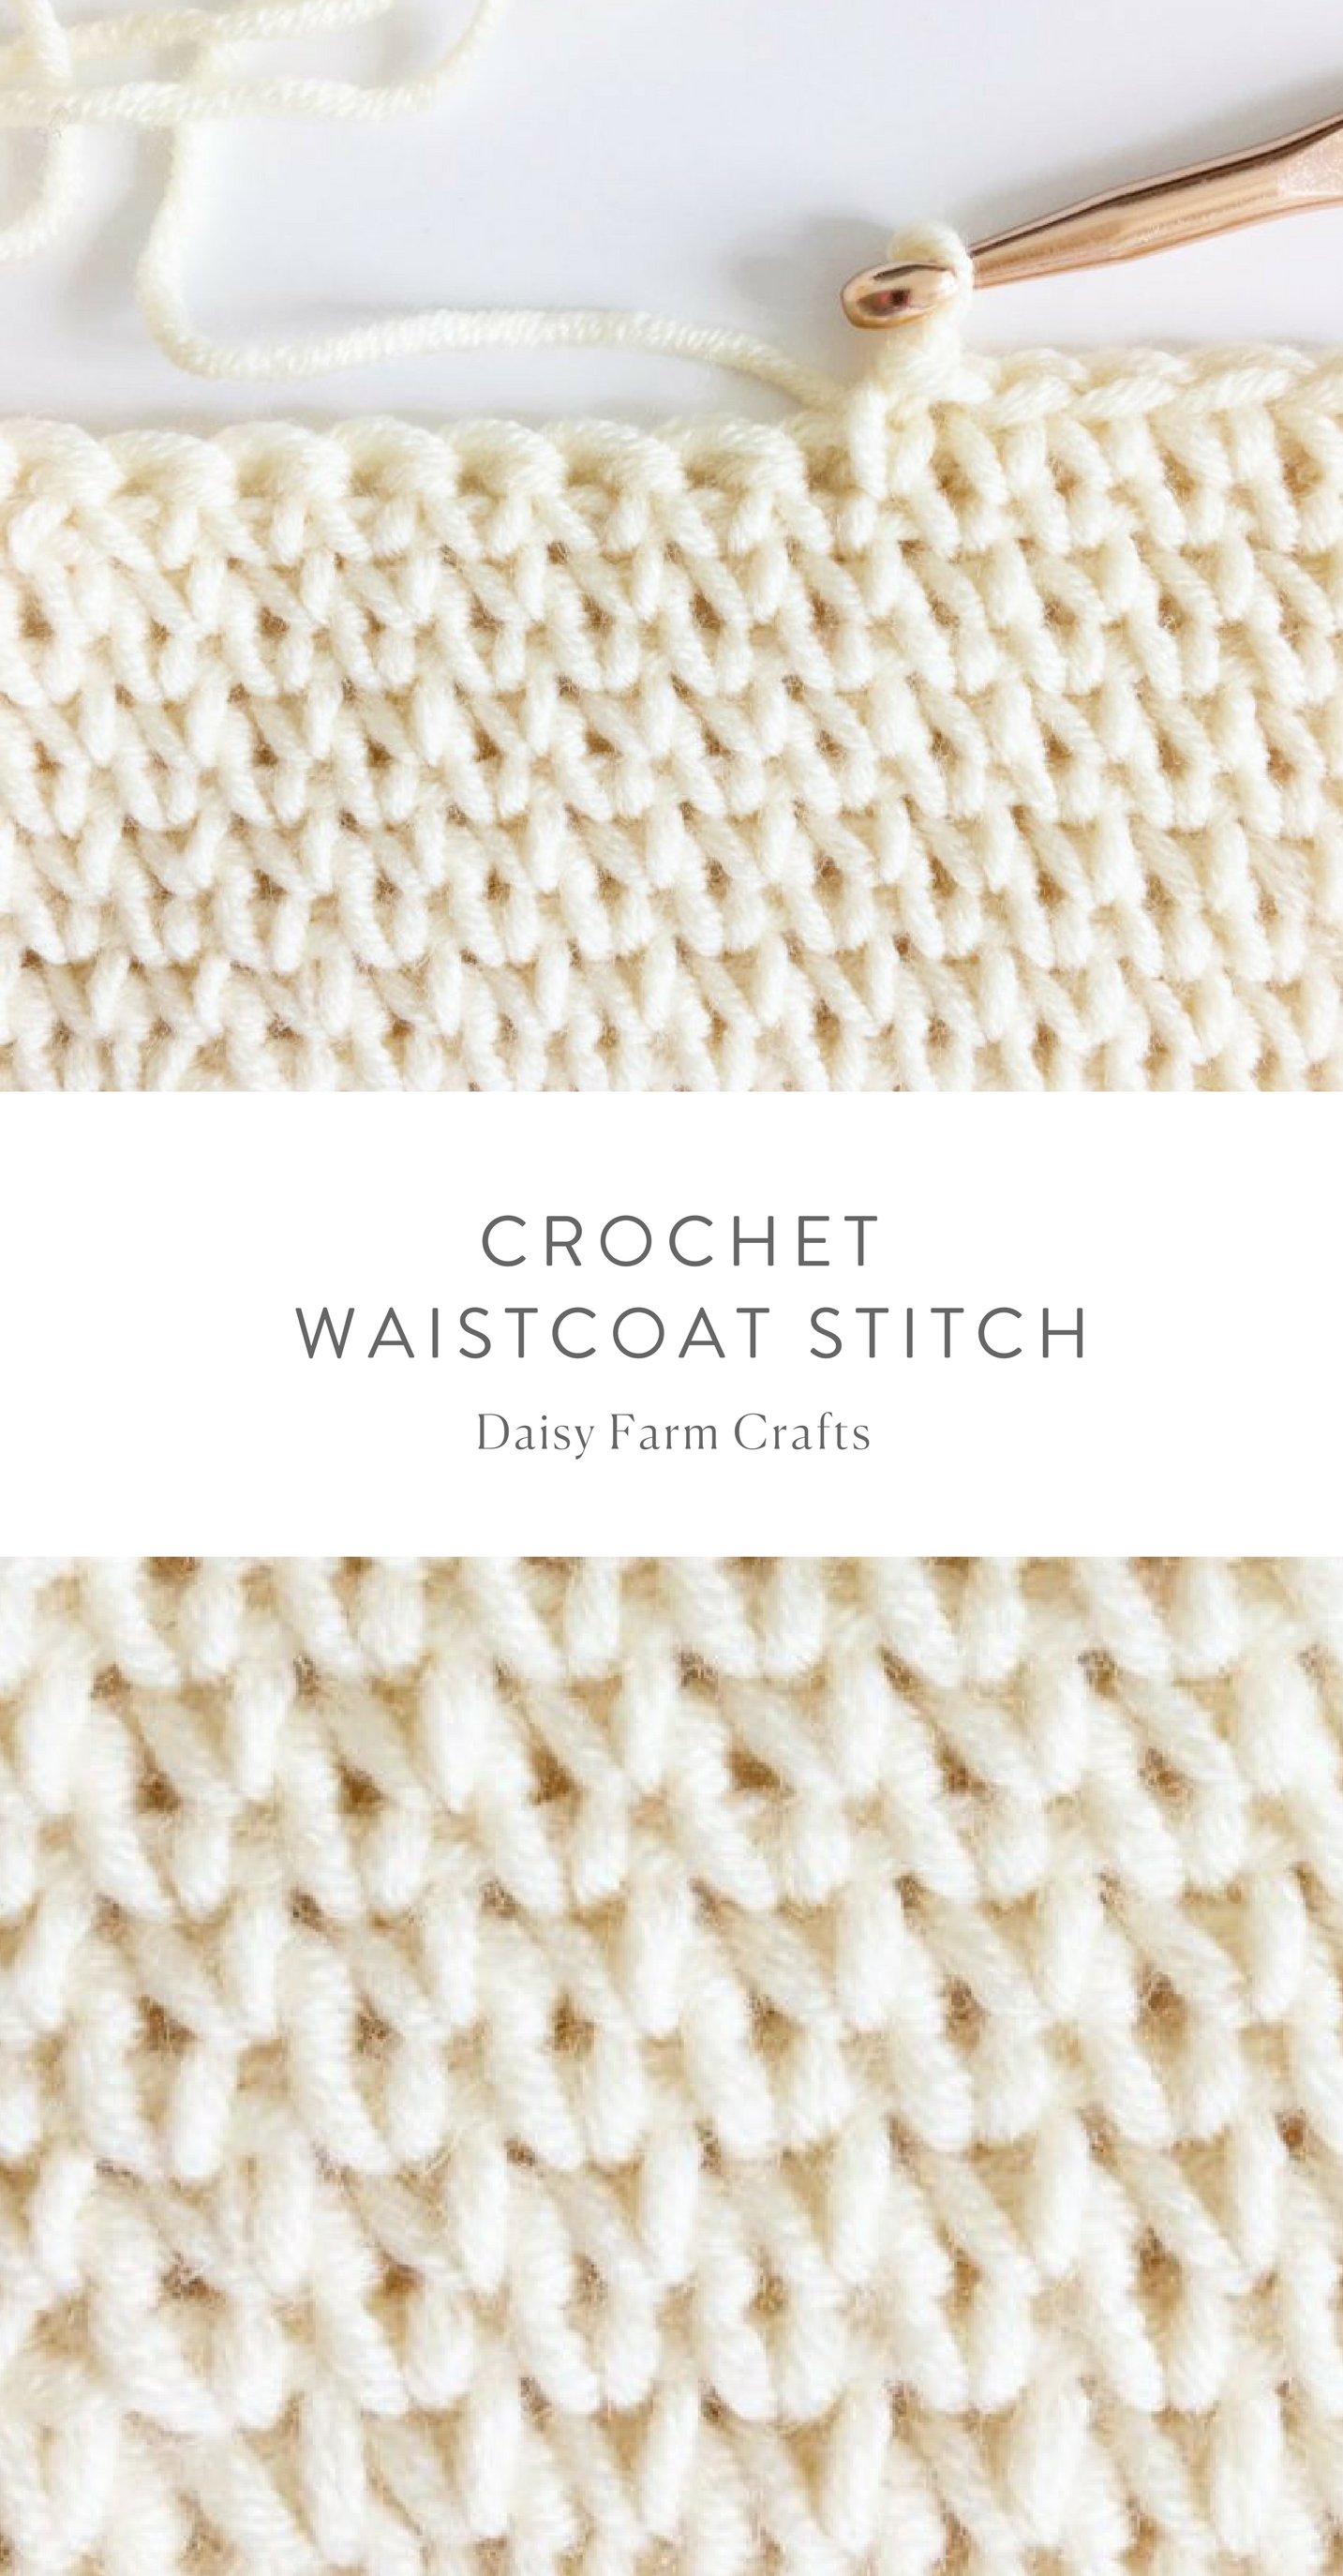 How To Crochet The Waistcoat Stitch Crochet Crochet Pinterest